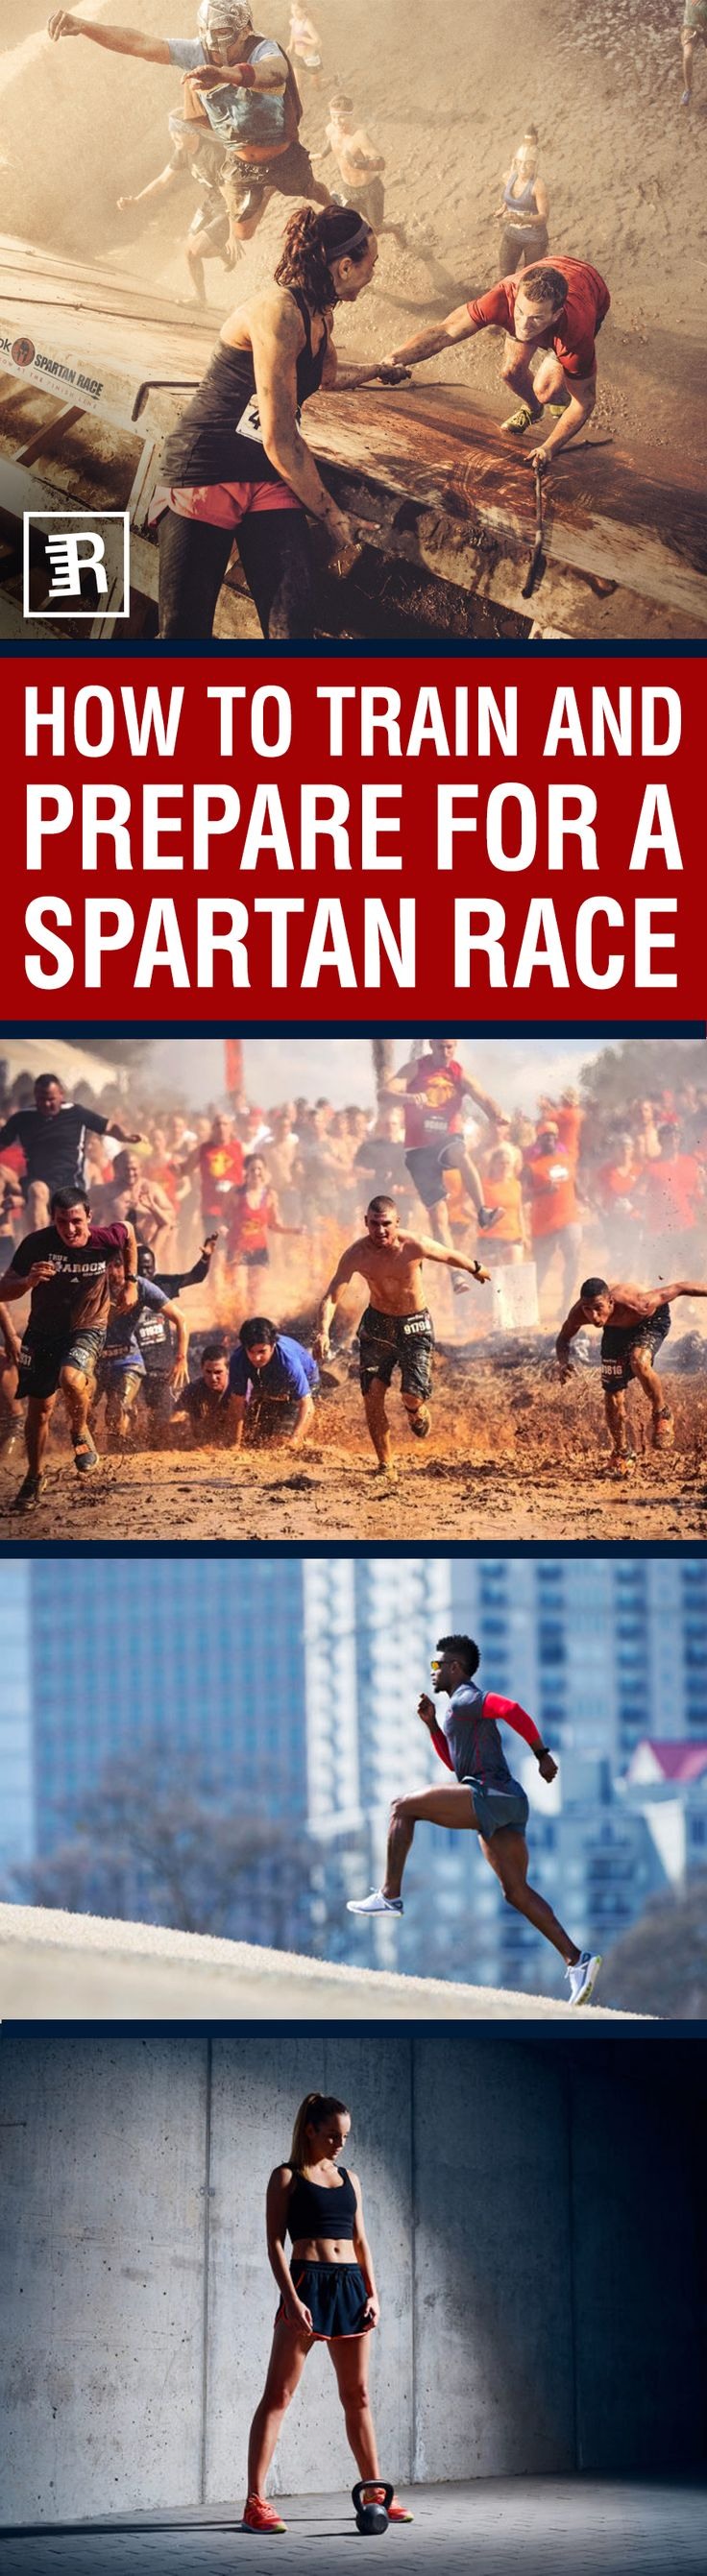 If you enjoy grit, mud, obstacles, paths of fire and ultimately – the challenge of a lifetime – then a Spartan race is definitely for you. Take on board some of our training advice to see you through